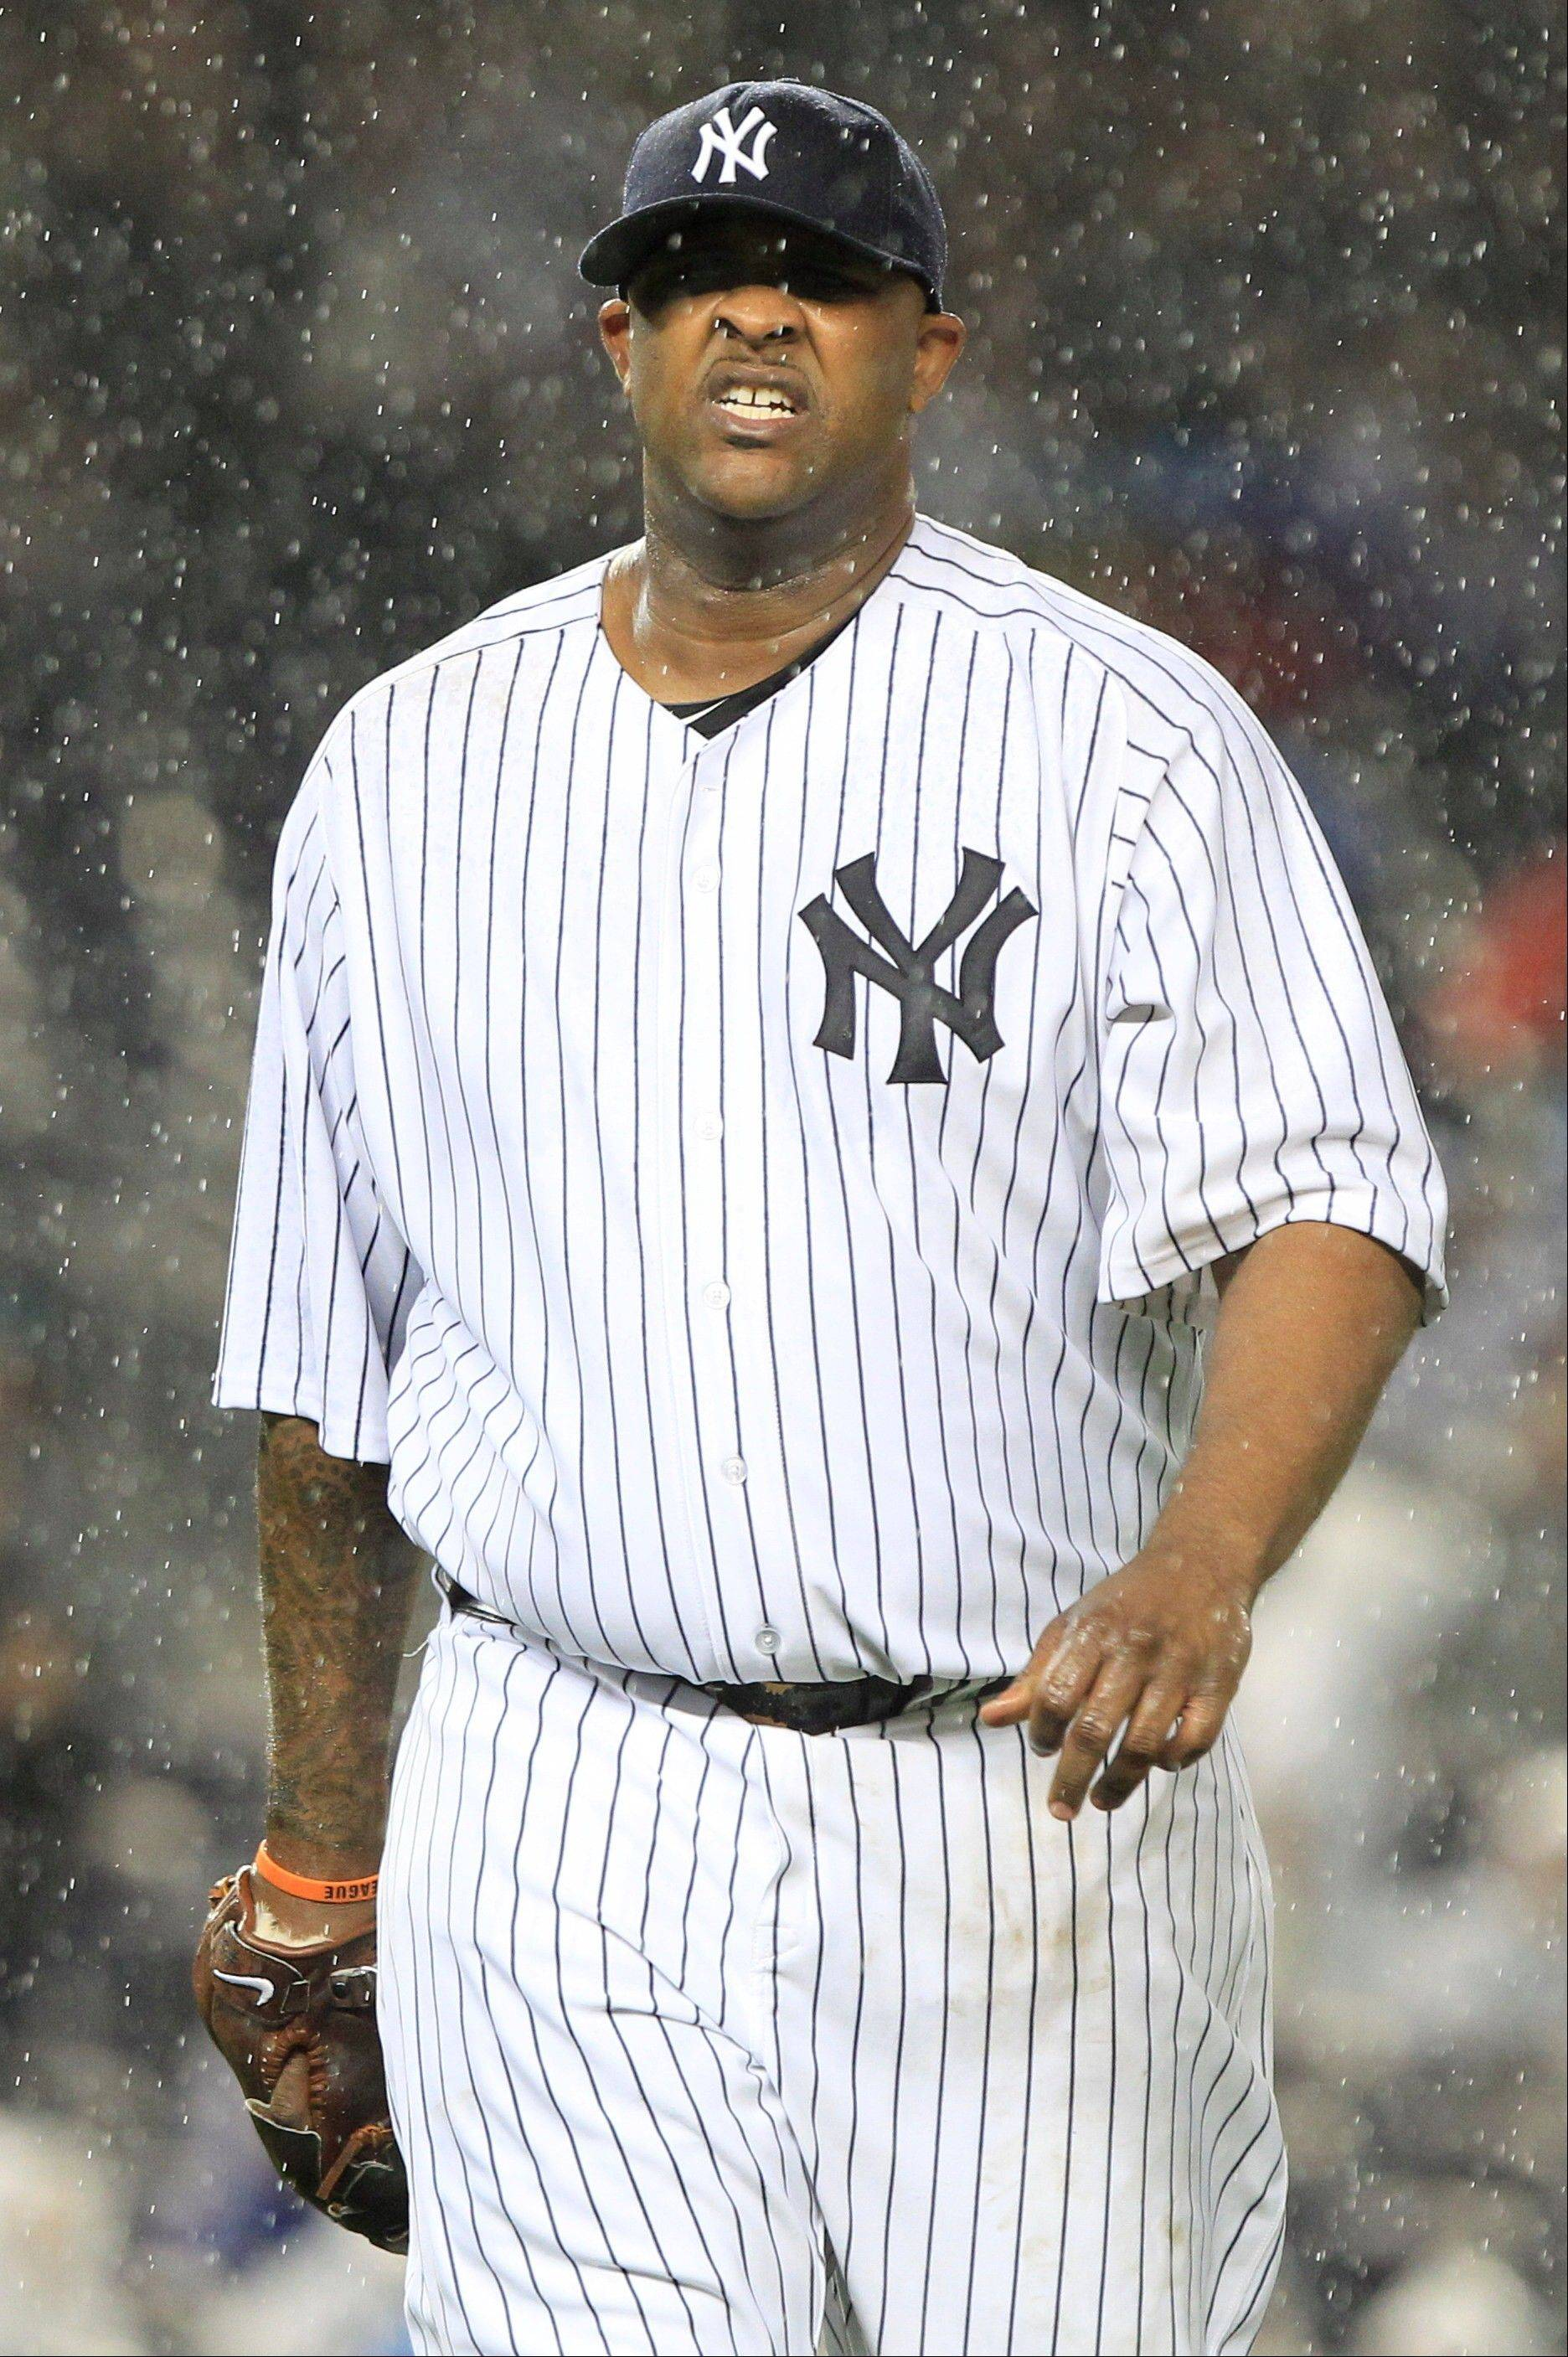 New York Yankees starting pitcher CC Sabathia is waterlogged after an inning of work in the opening game of the ALDS between the Yankees and Detriot Tigers. The game was suspended in the second inning due to rain and will resume at 7:37 p.m. Saturday night.